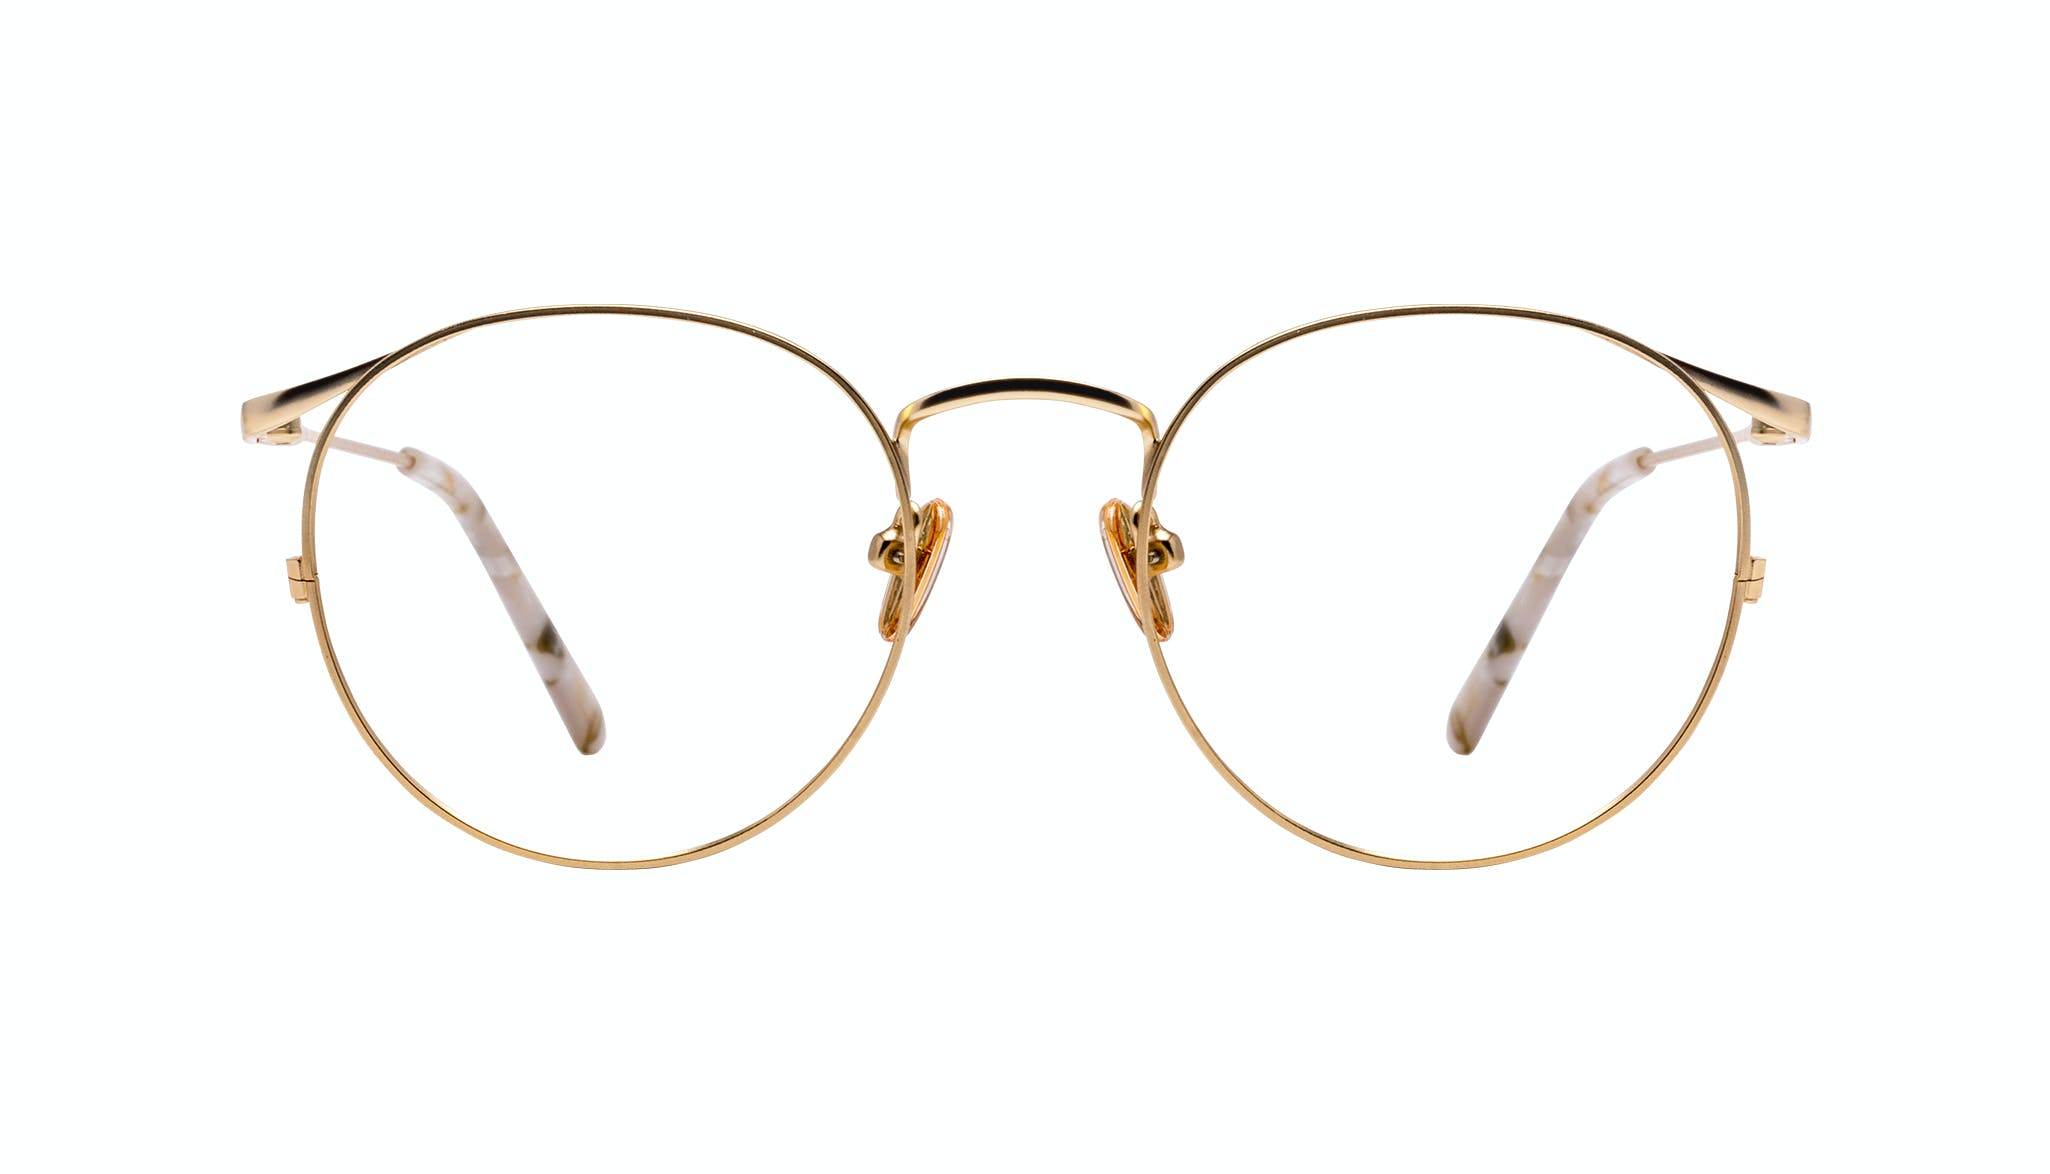 Affordable Fashion Glasses Round Eyeglasses Women Curve Gold Front